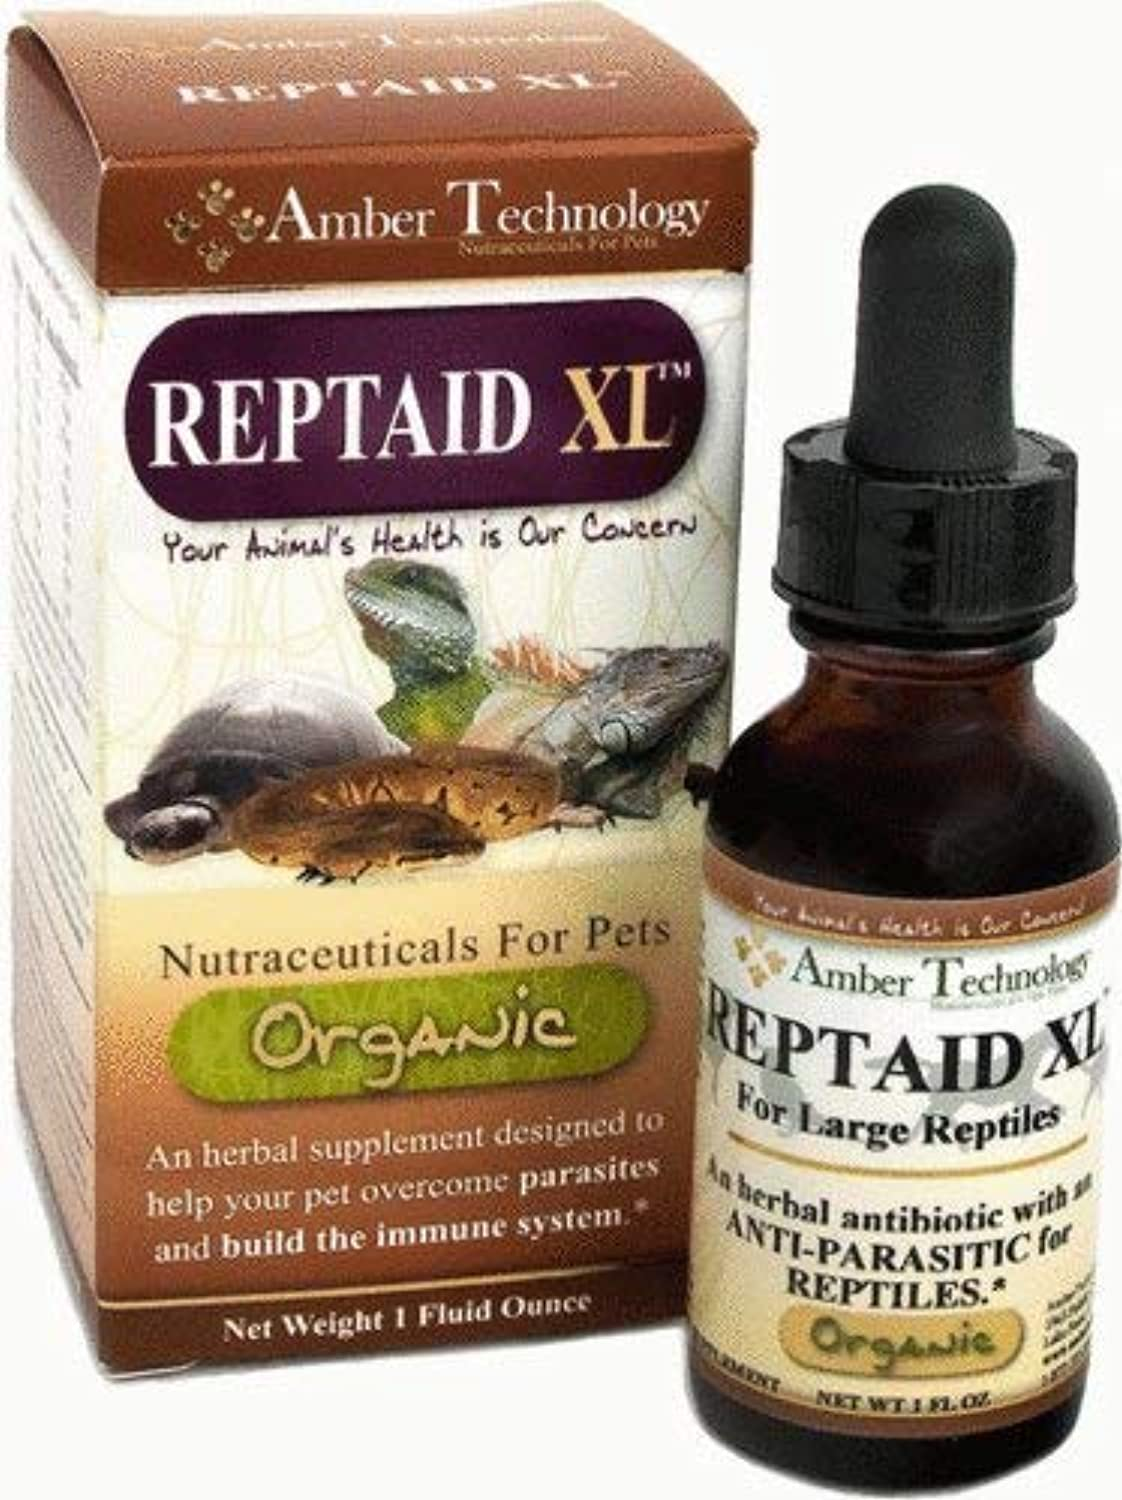 Amber Technology, Reptaid XL, 1 oz.